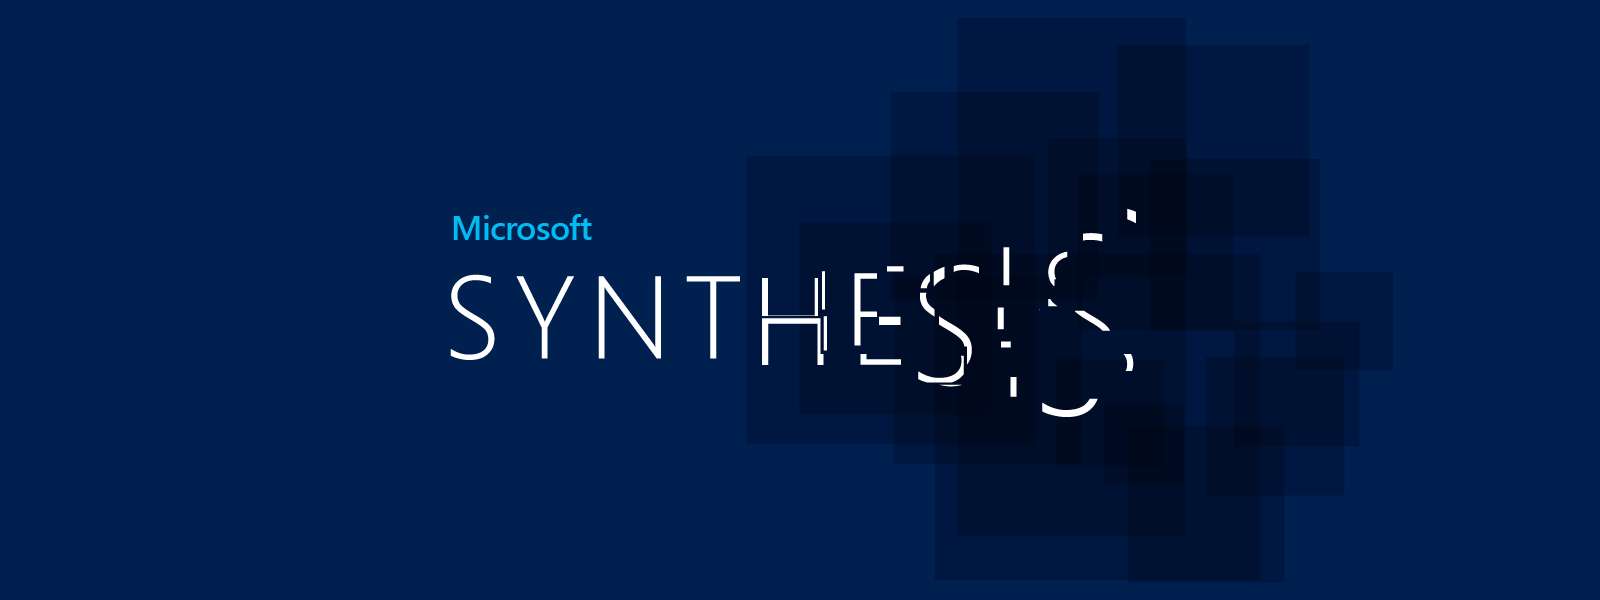 Microsoft Summit Synthesis